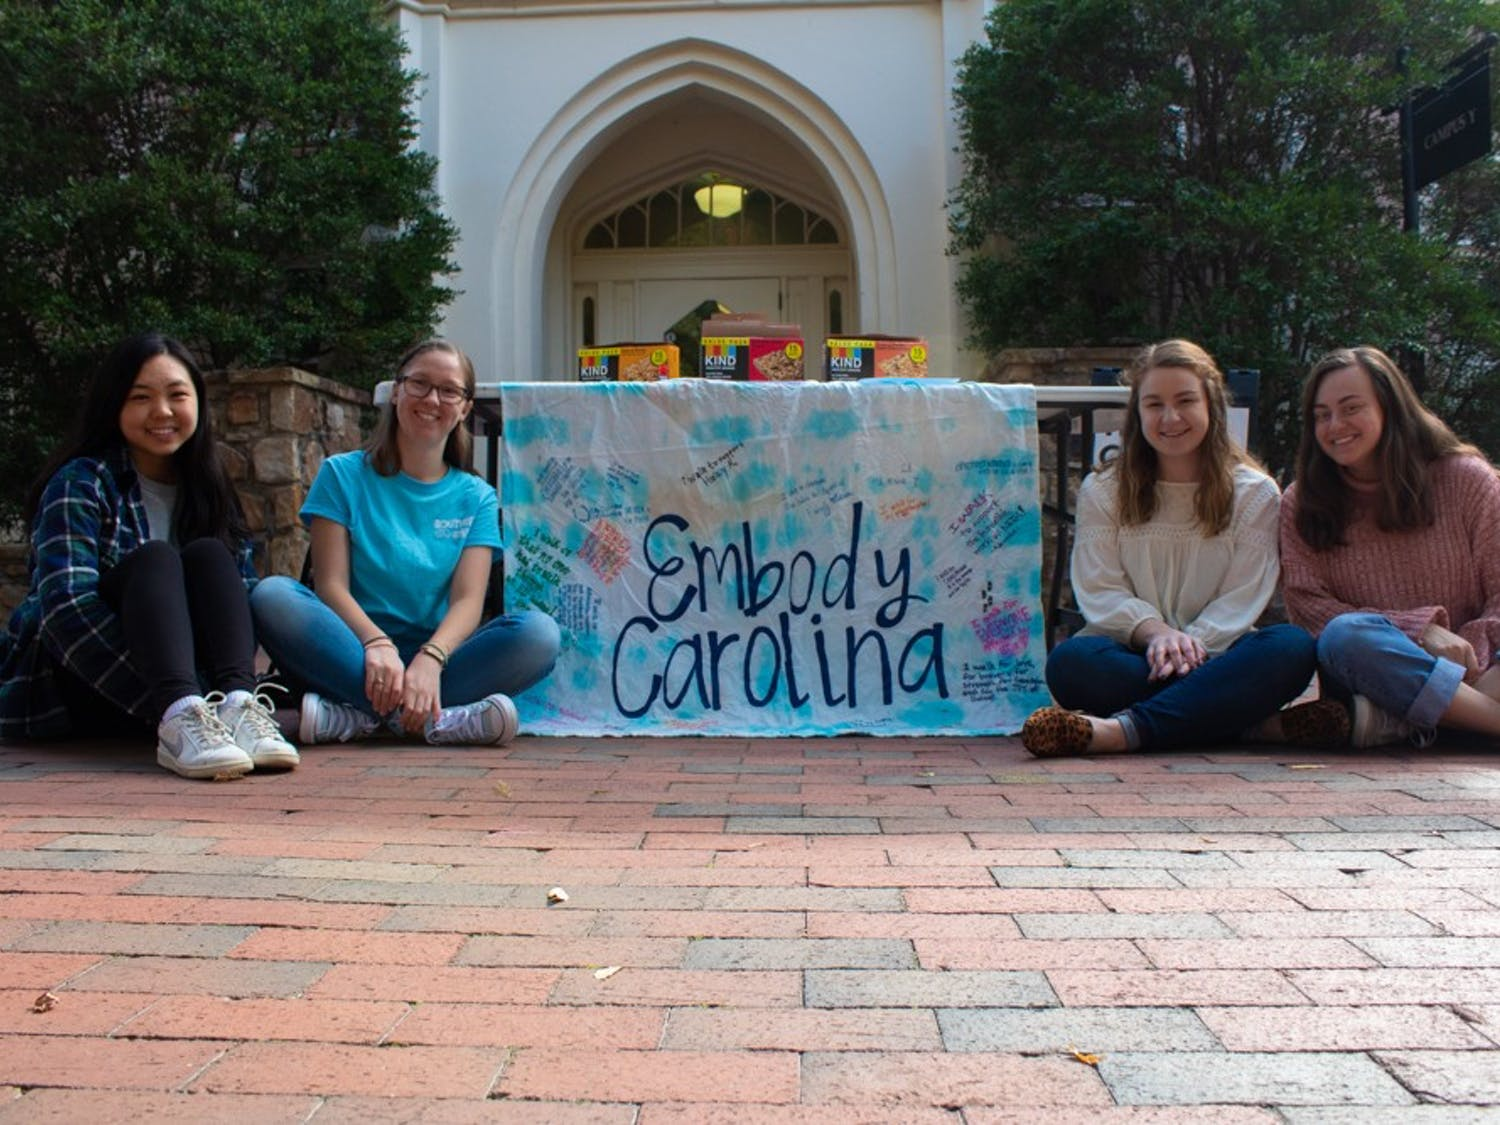 (From left ) Grace He, a junior music and psychology major; Cameron Lynch, a sophomore undecided major; Ashley Broadwater, a senior public relations major; and Maya Wahl, a junior exercise and sport science major, pose in front of an Embody Carolina banner in front of the Campus Y on Monday, Nov. 4, 2019.